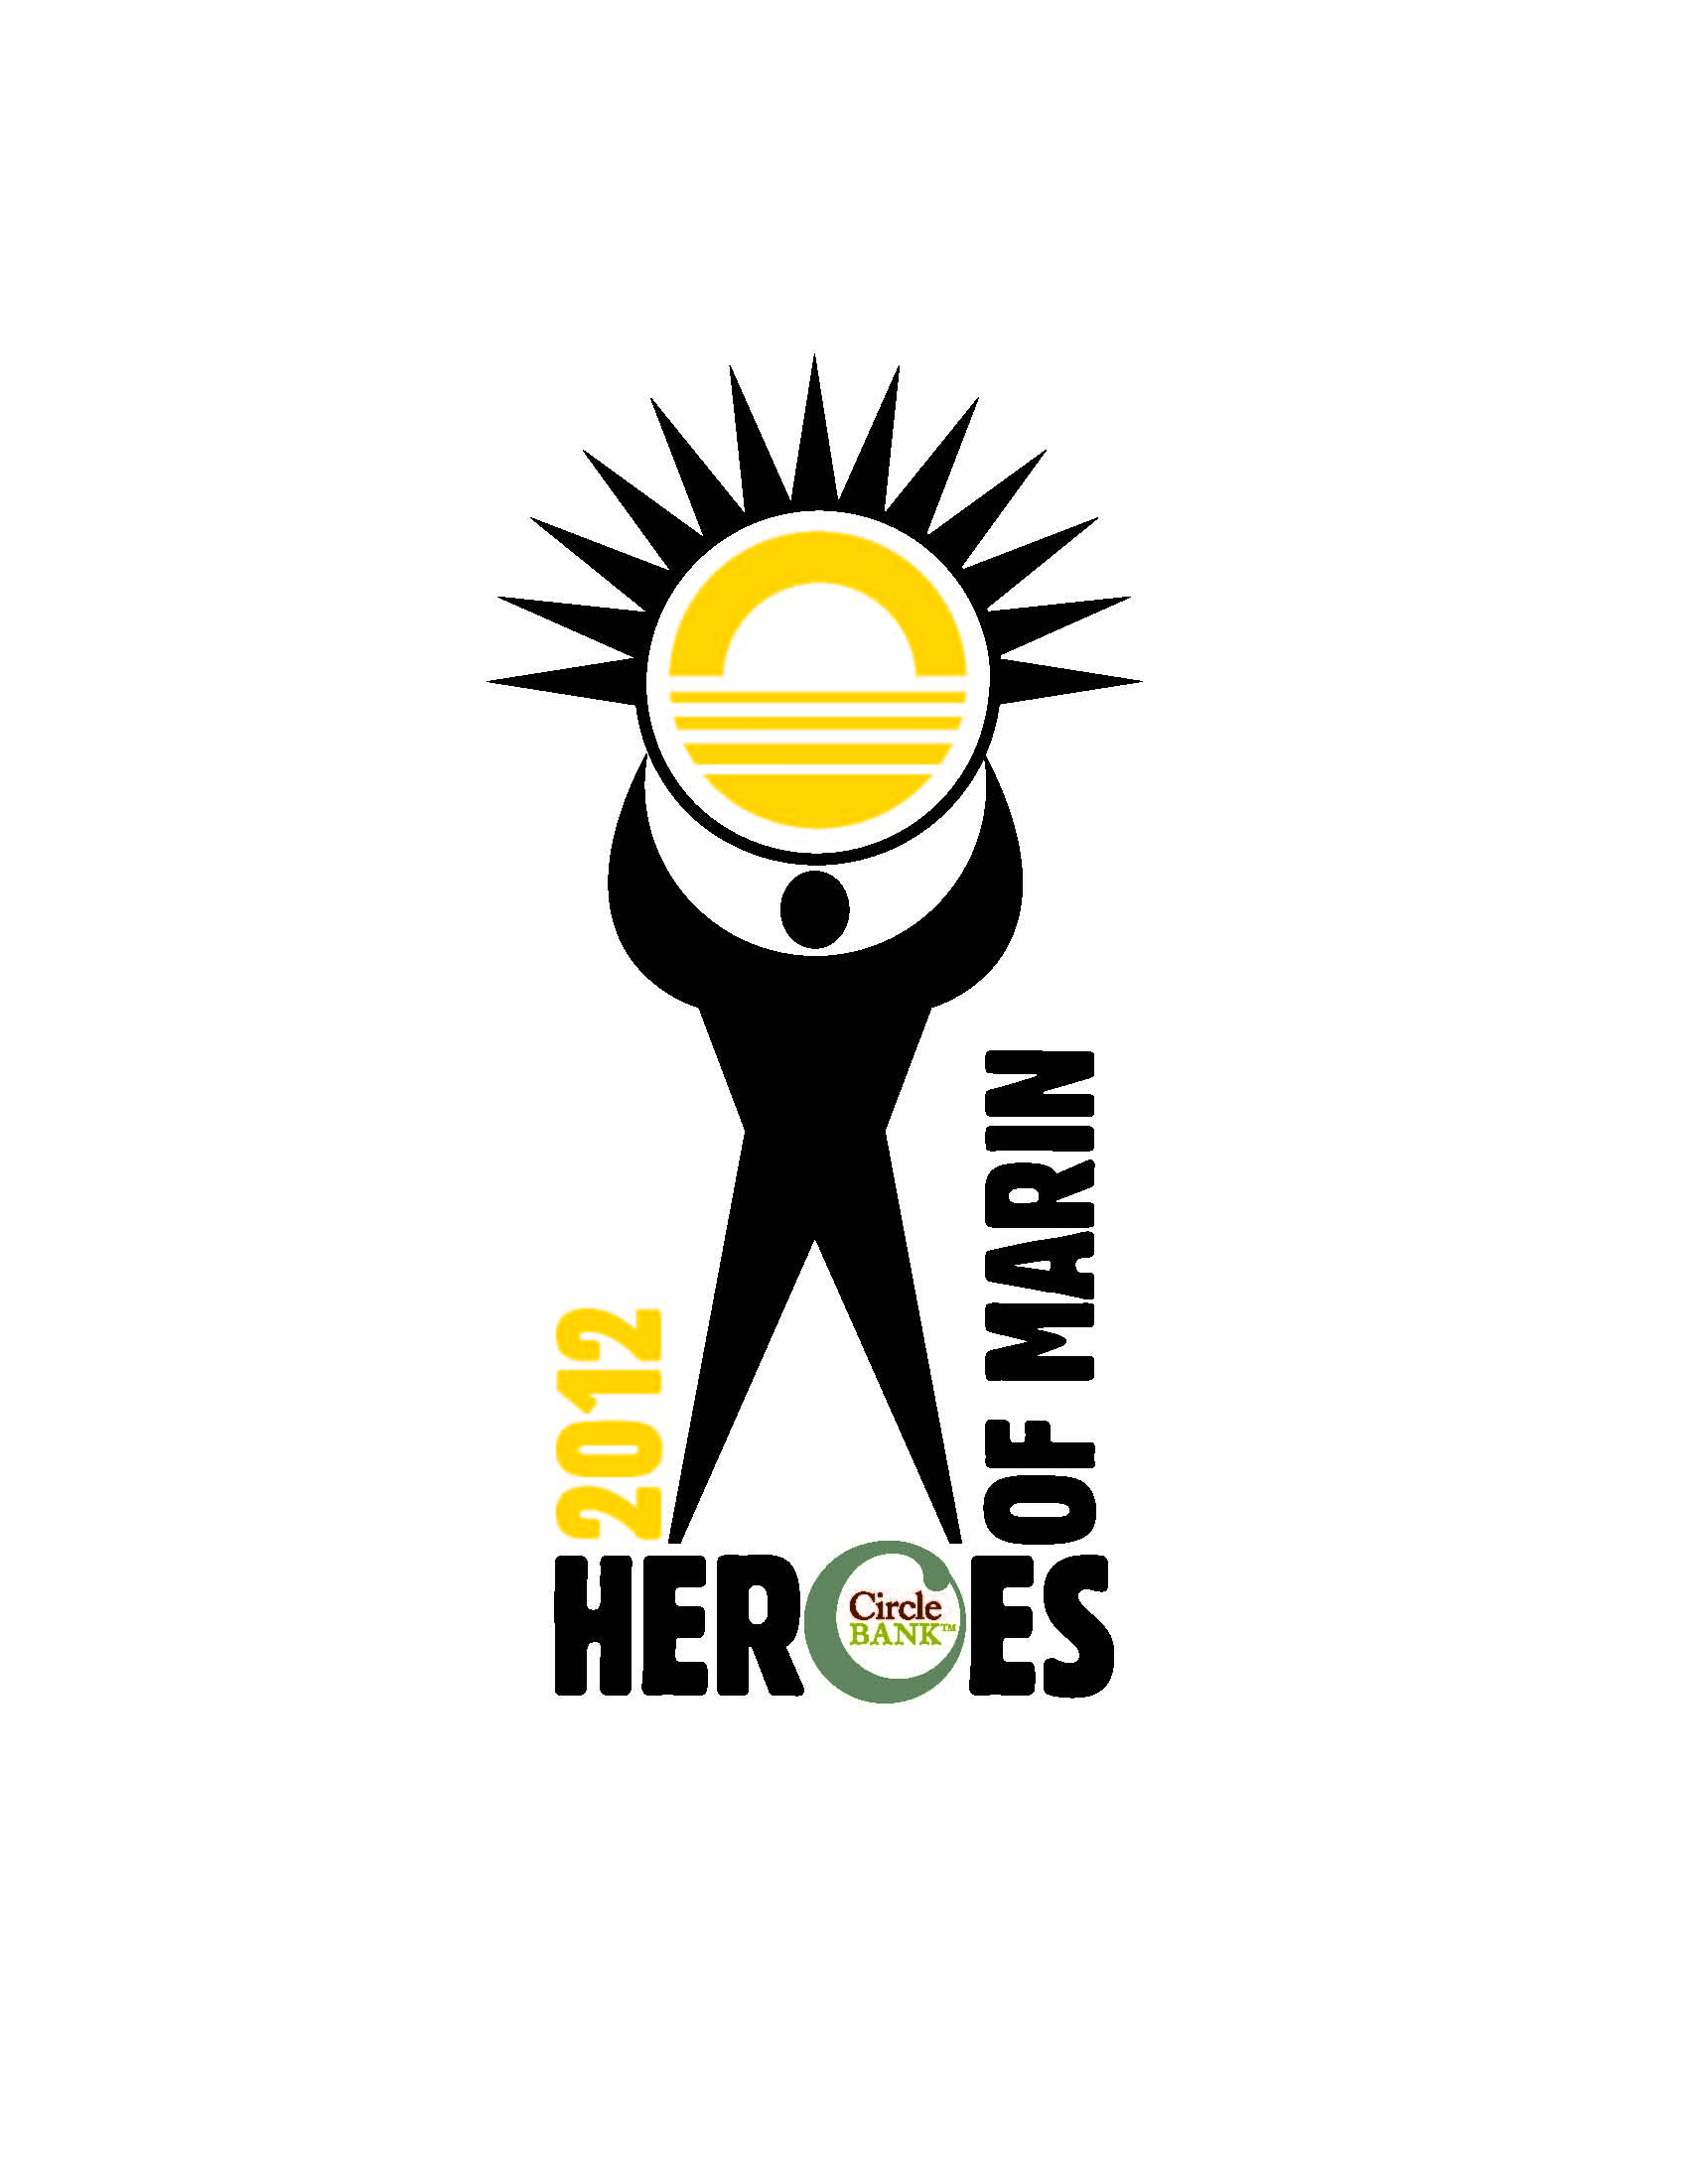 Pacific Sun Heroes of Marin